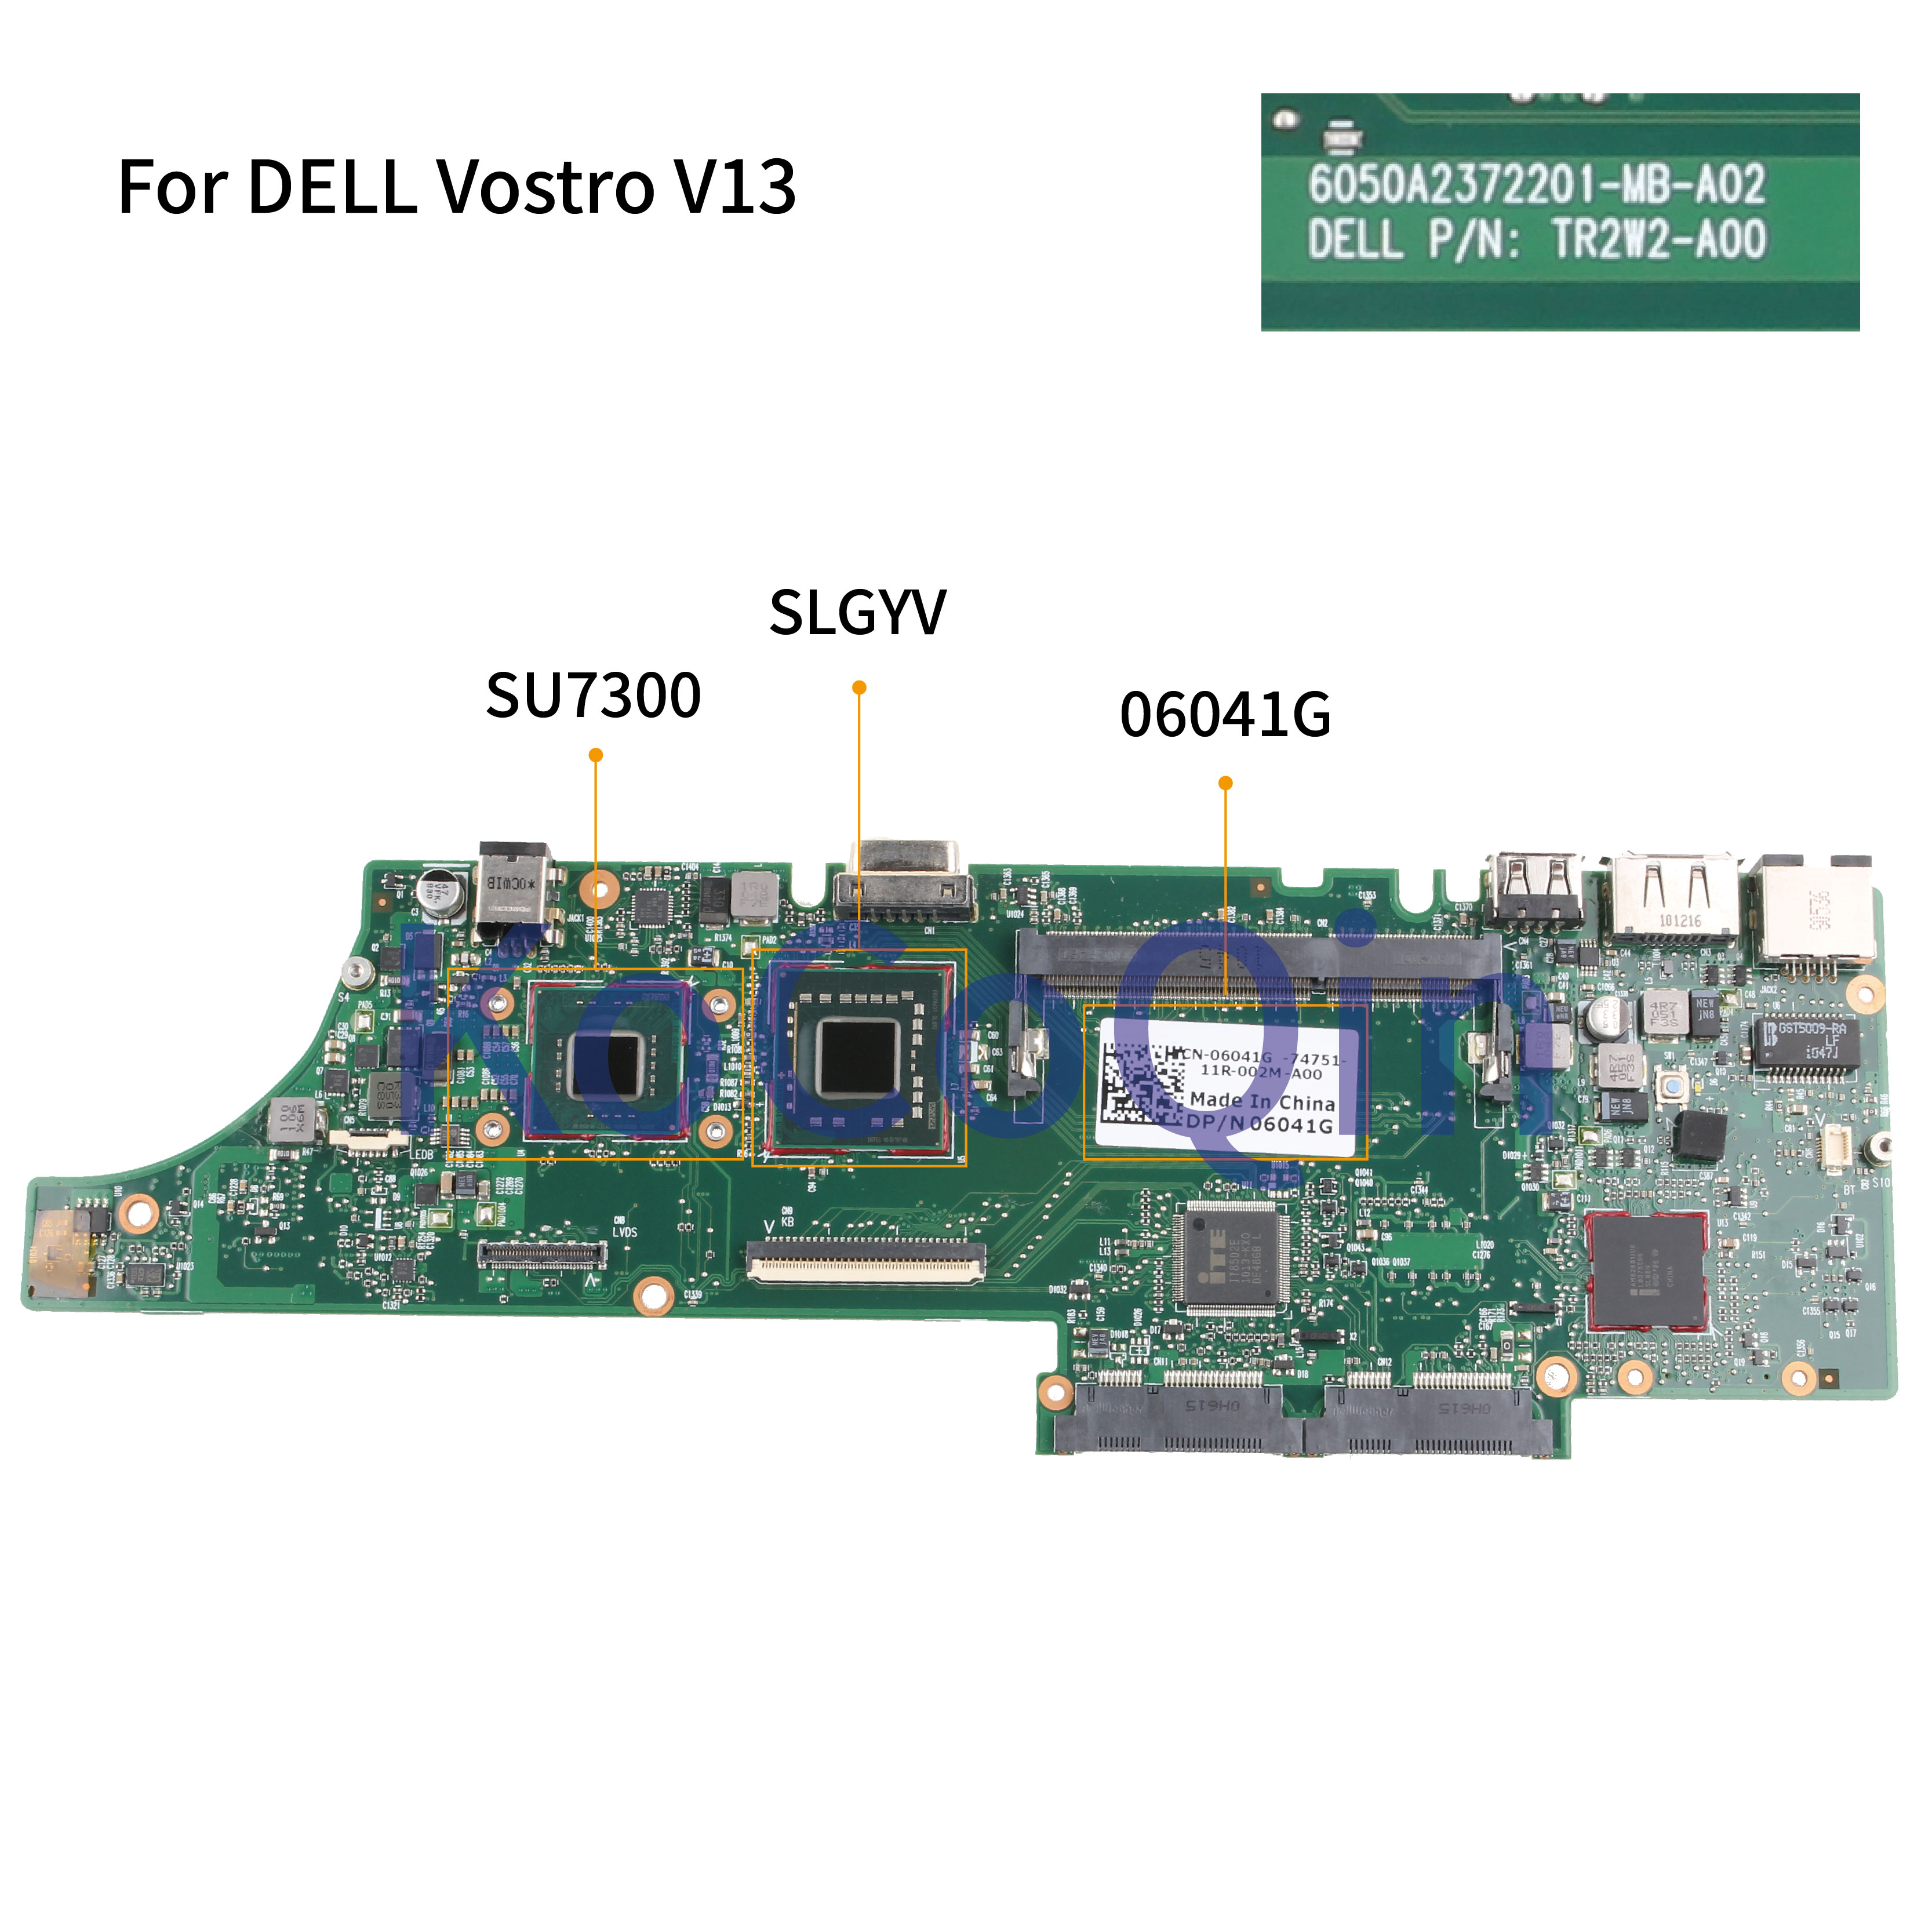 KoCoQin Laptop Motherboard For DELL Vostro 13 V13 Mainboard CN-06041G 06041G 6050A2372201-MB-A02 SU7300 CPU SLGYV